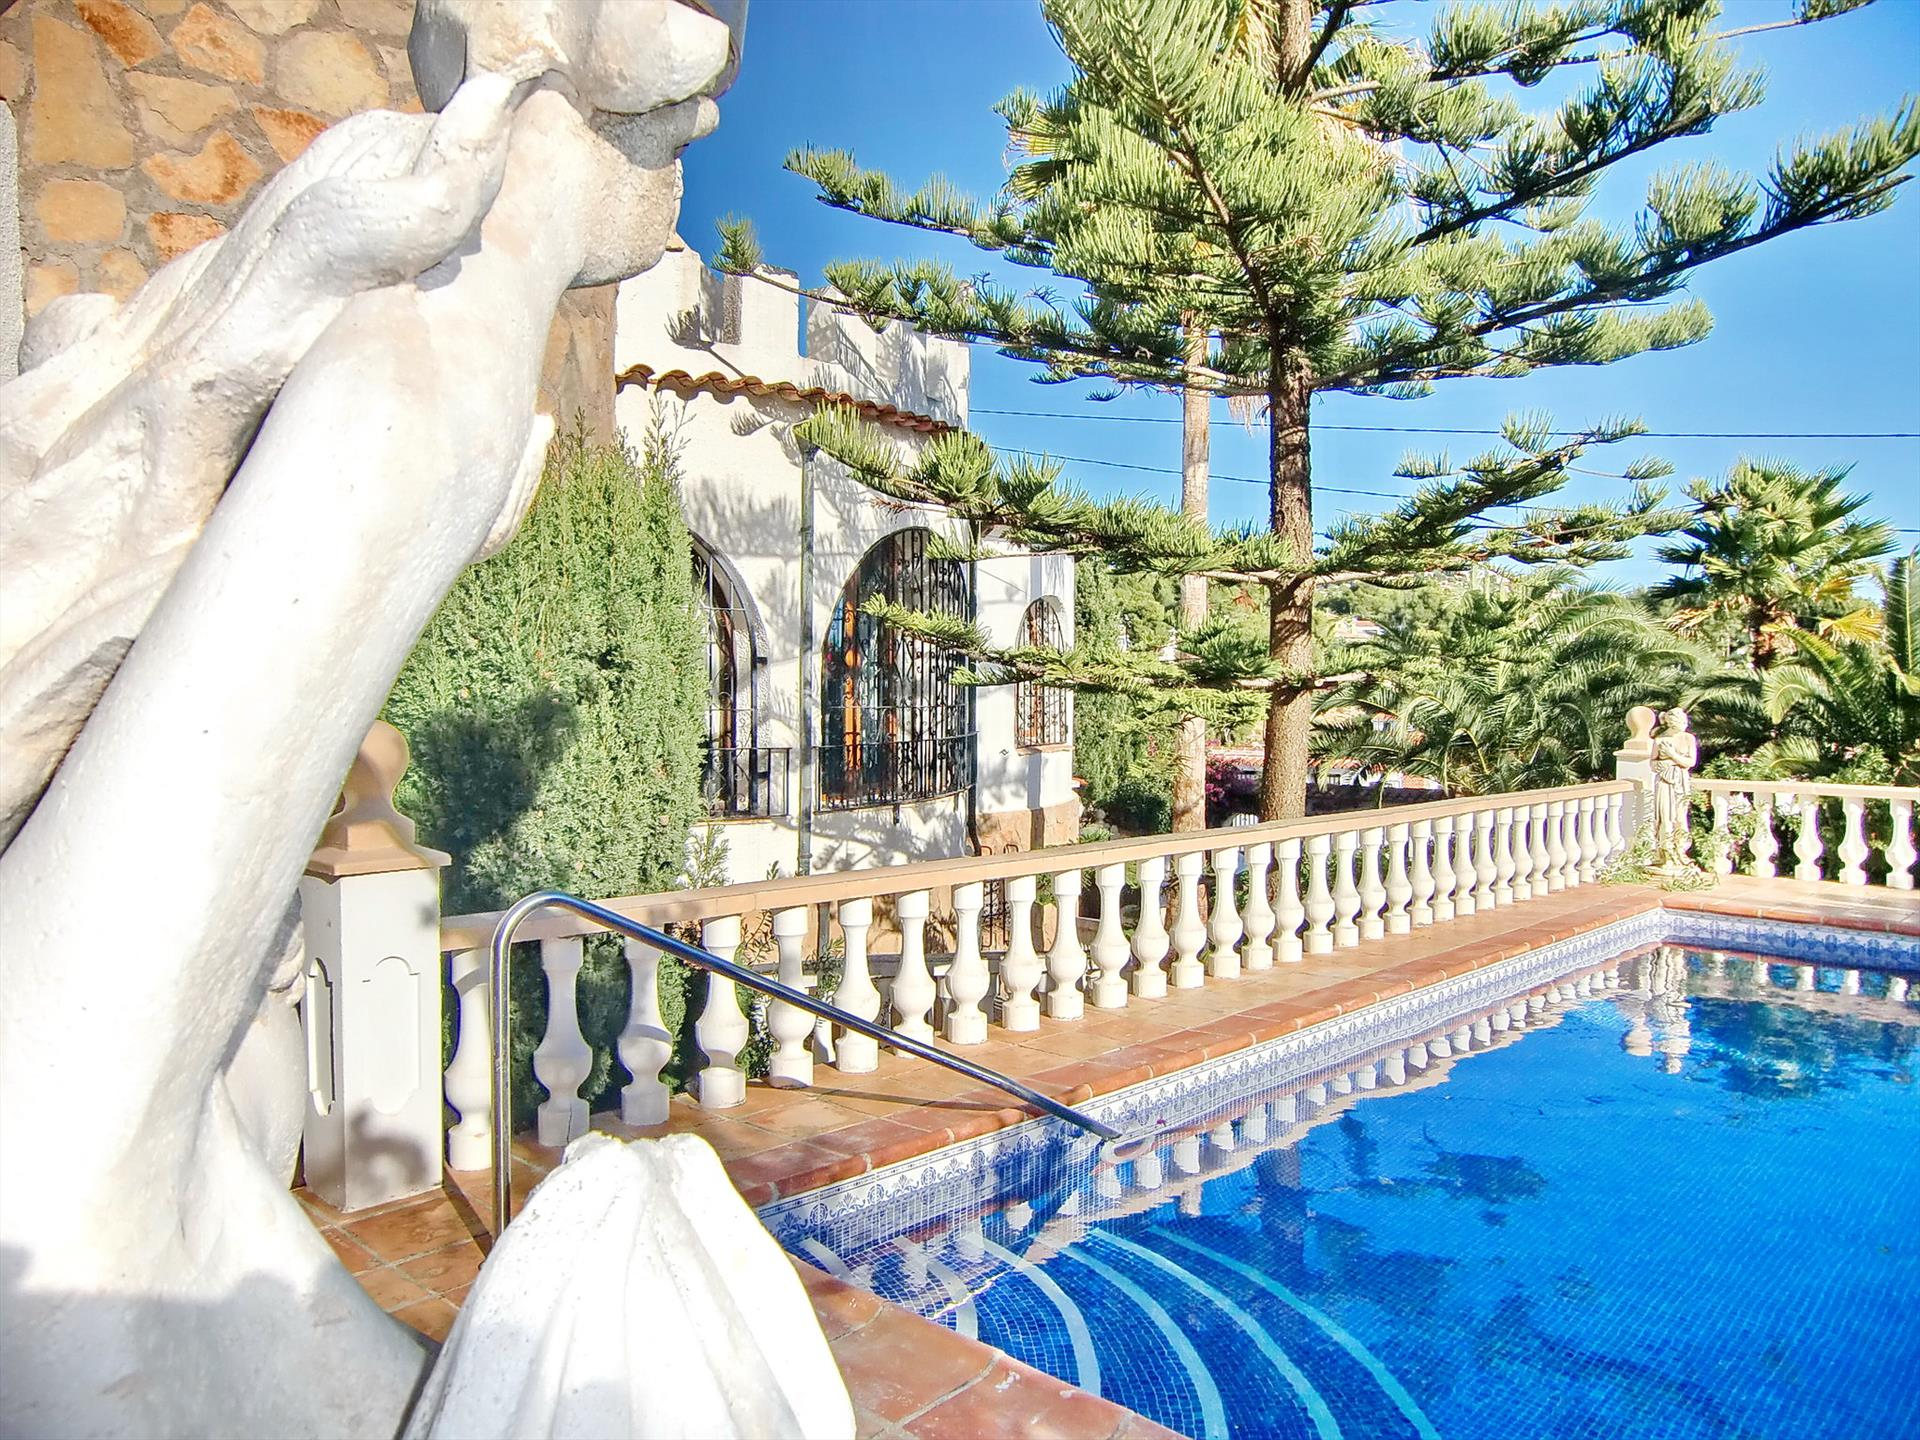 Alquileres Villamar  Leones 4p, Classic and romantic villa in Benissa, on the Costa Blanca, Spain  with private pool for 4 persons...